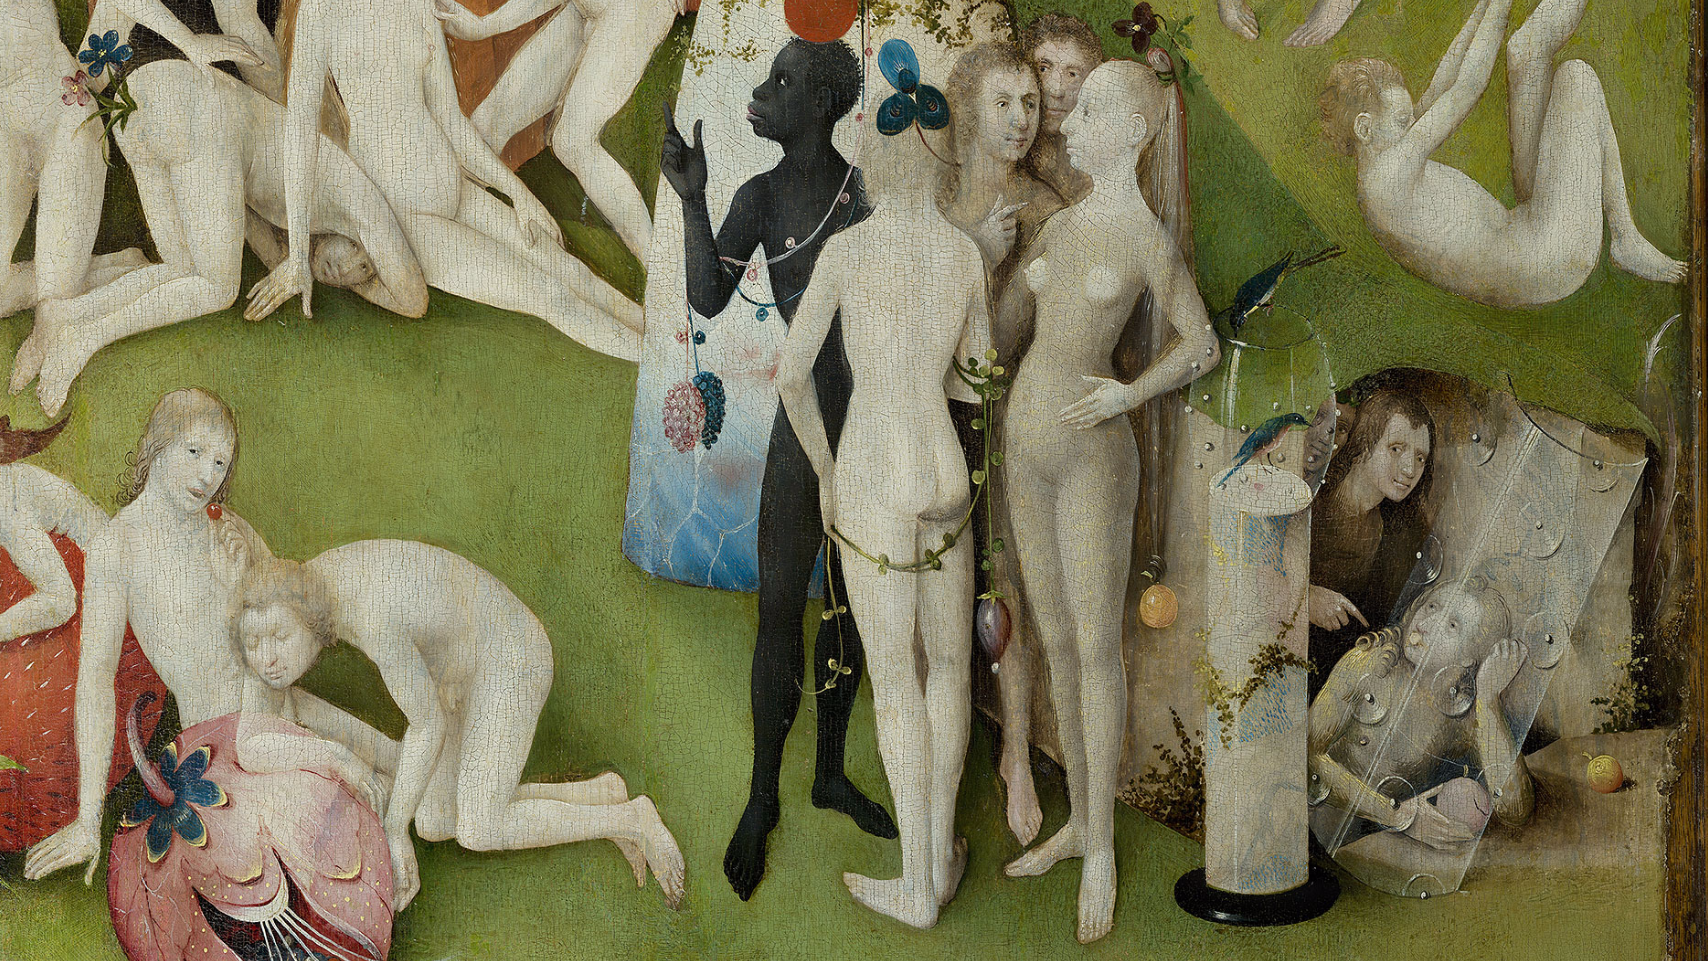 Explore 'The Garden of Earthly Delights' in high ...